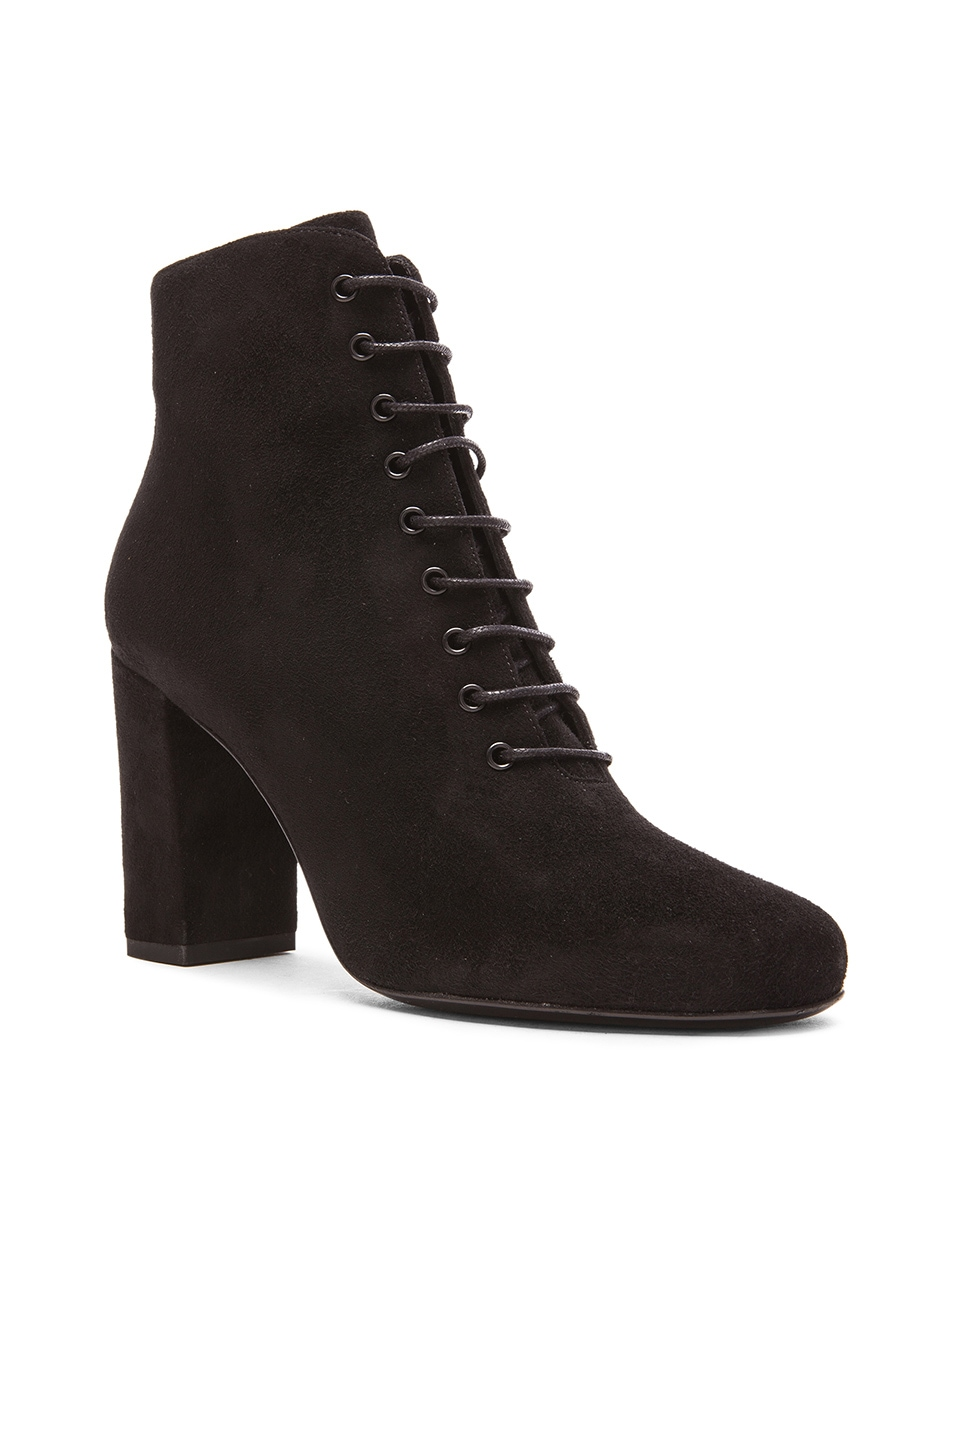 Image 2 of Saint Laurent Suede Lace Up Babies Boots in Black